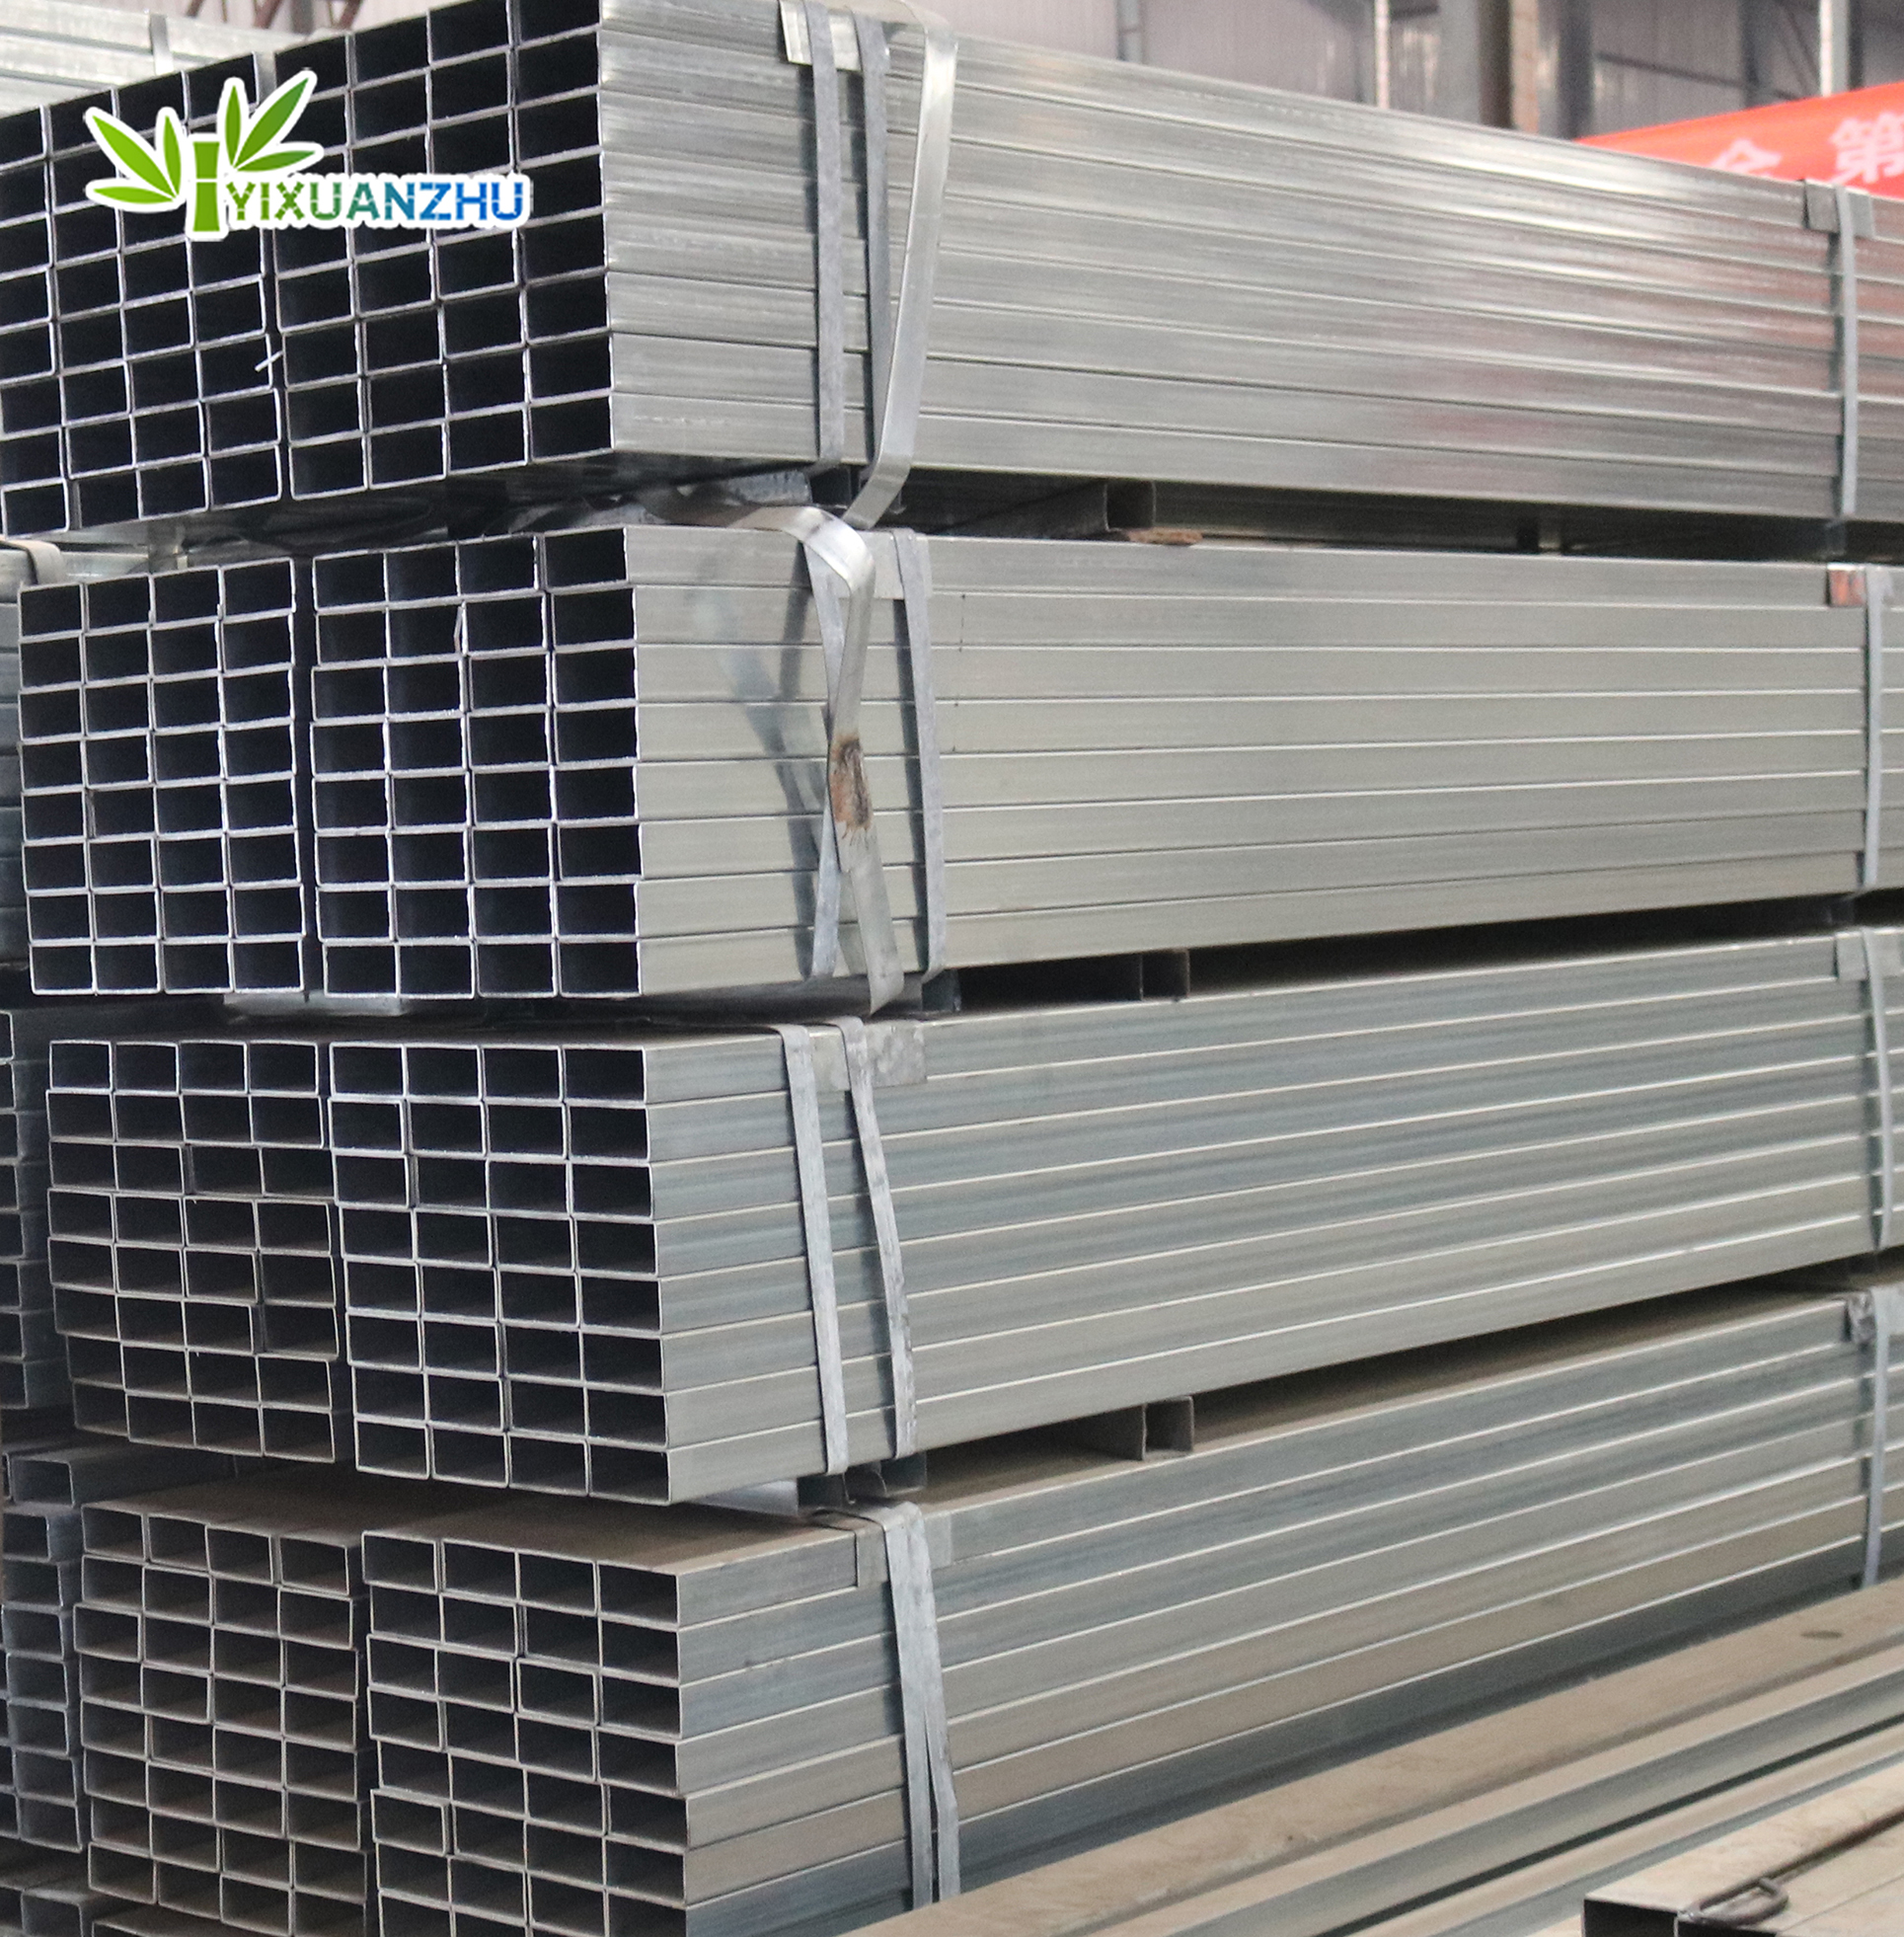 Galvanized ms square pipe weight chart galvanized ms square pipe galvanized ms square pipe weight chart galvanized ms square pipe weight chart suppliers and manufacturers at alibaba geenschuldenfo Choice Image